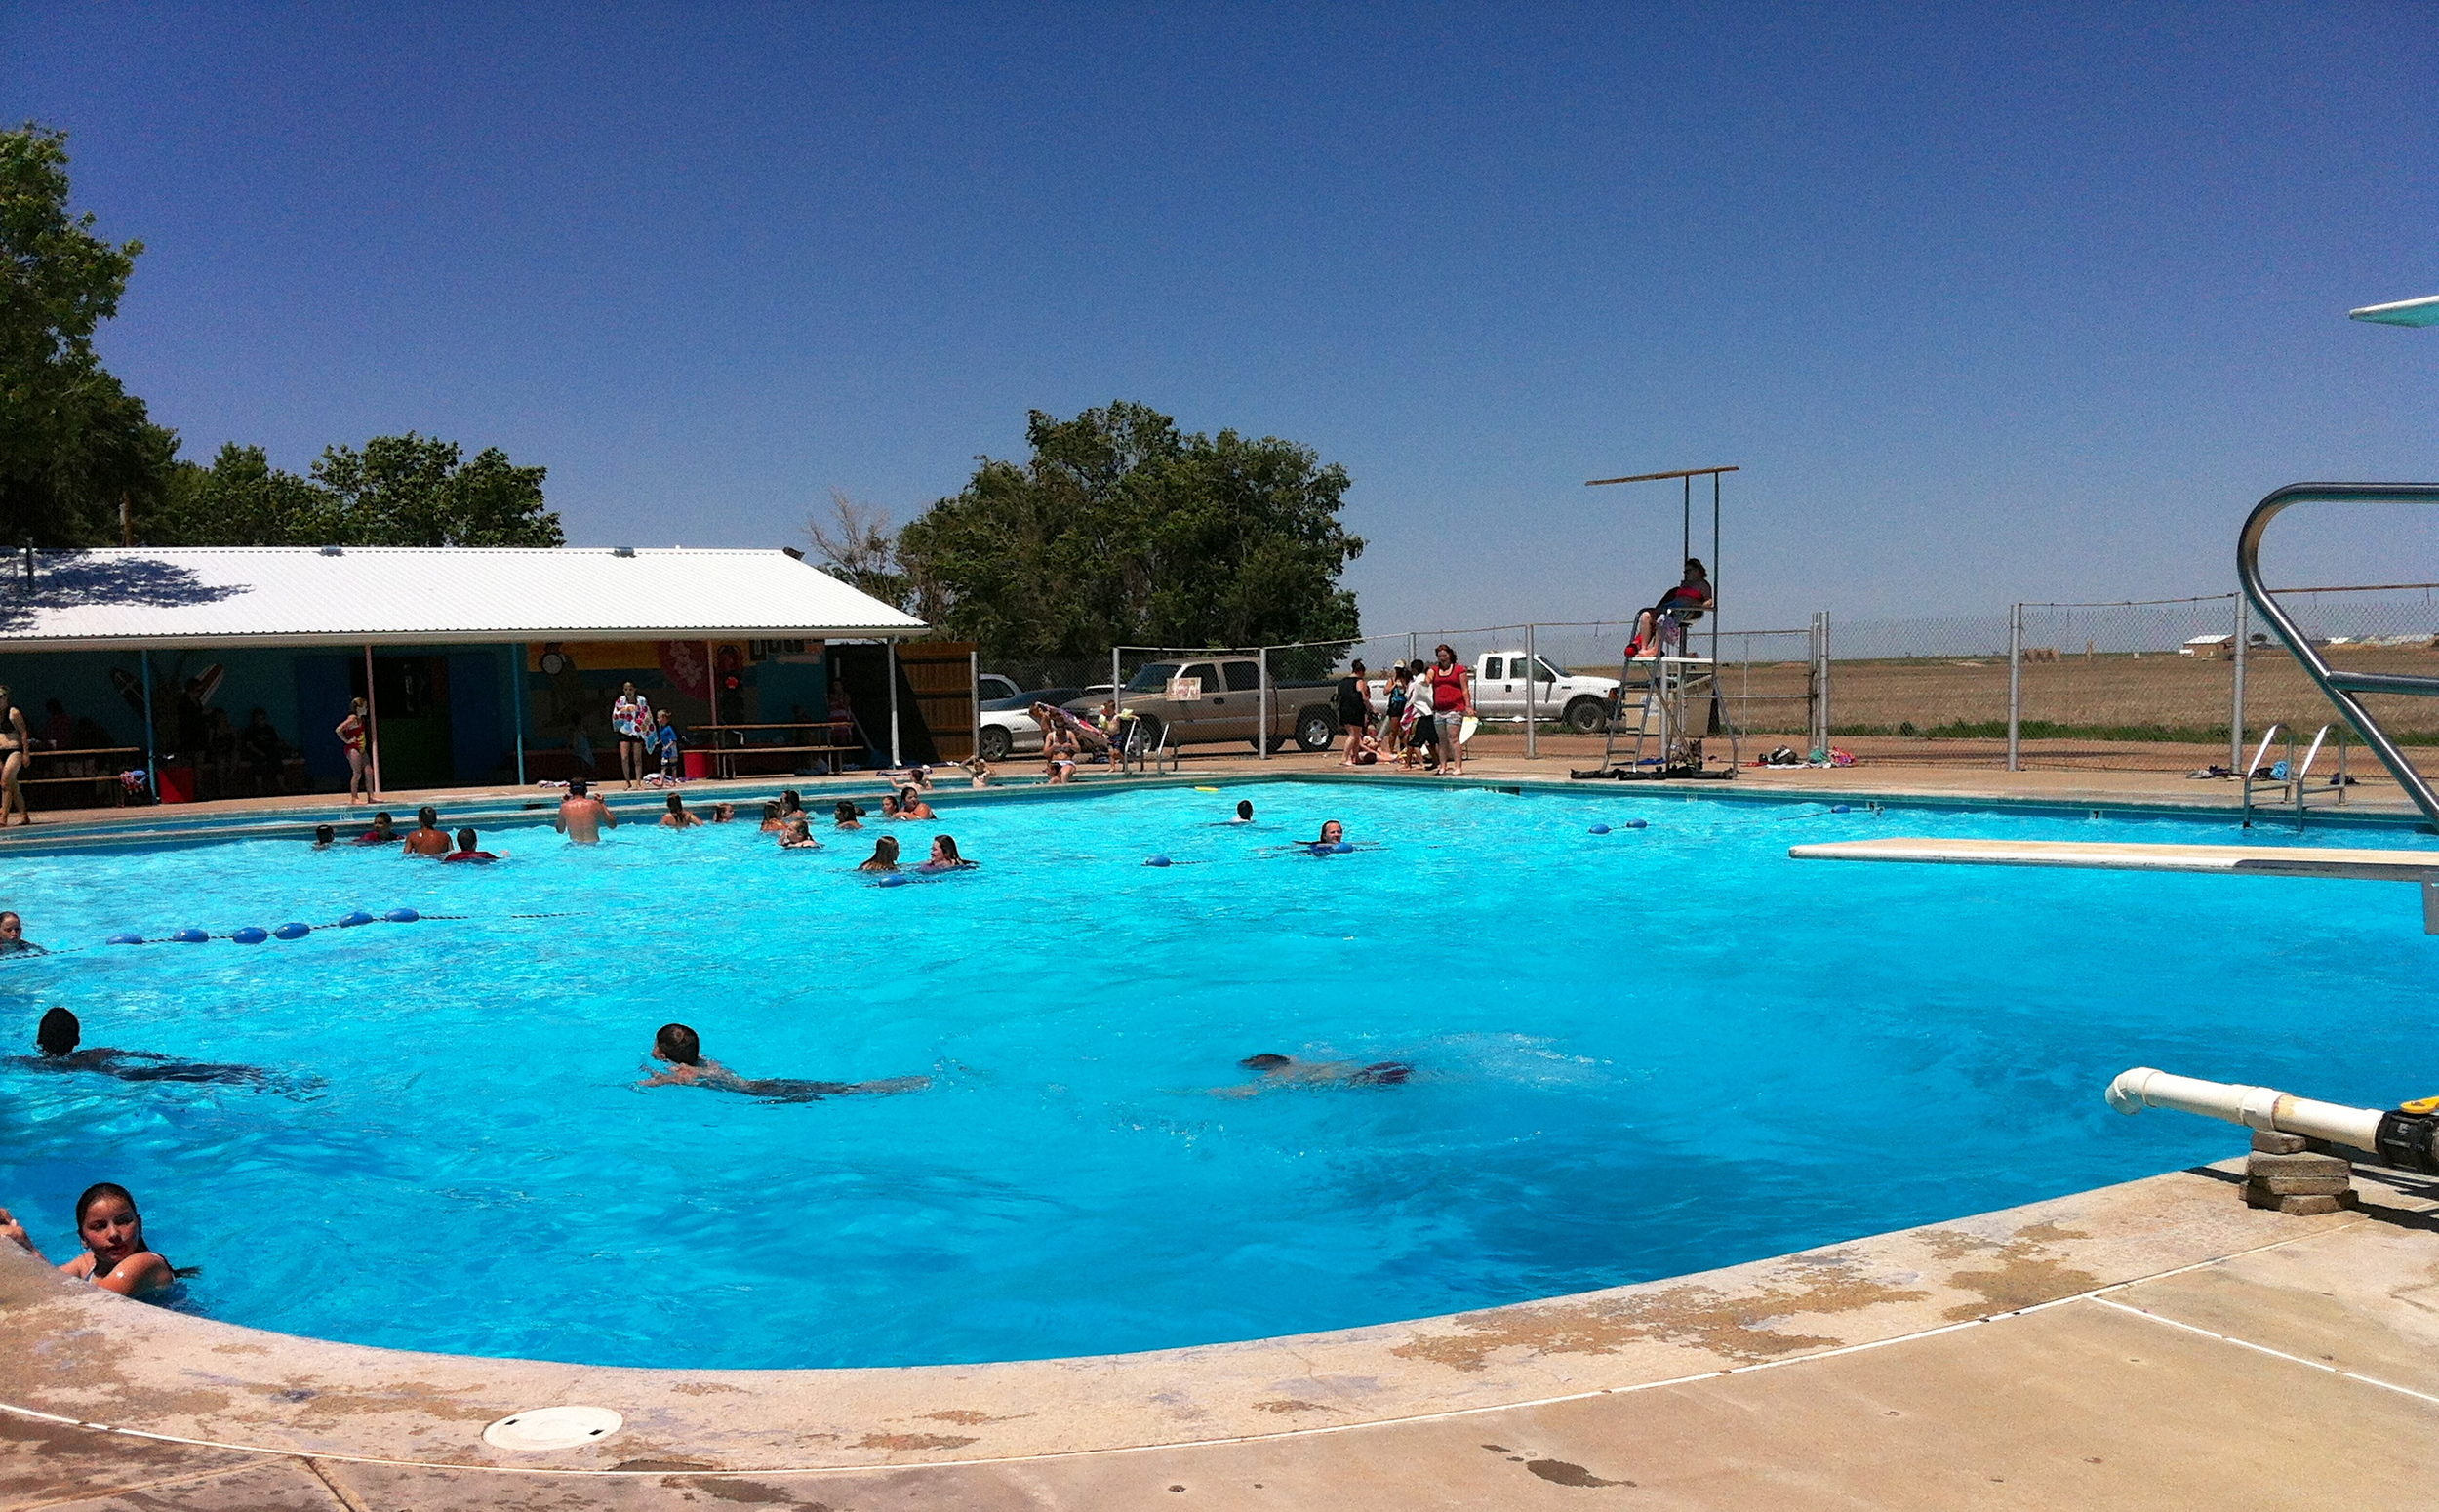 Sublette City Pool On a Hot Summer Day!